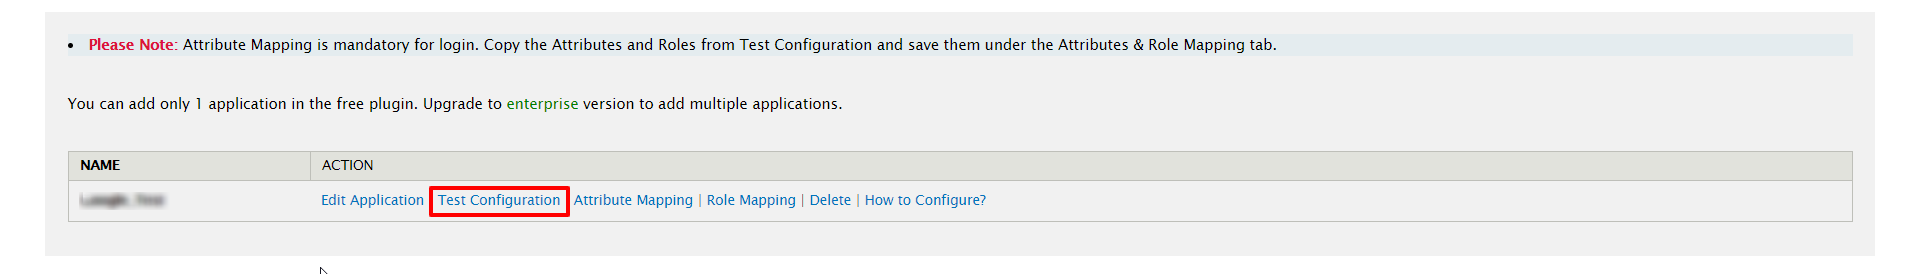 Cognito_sso_Drupal test configuration